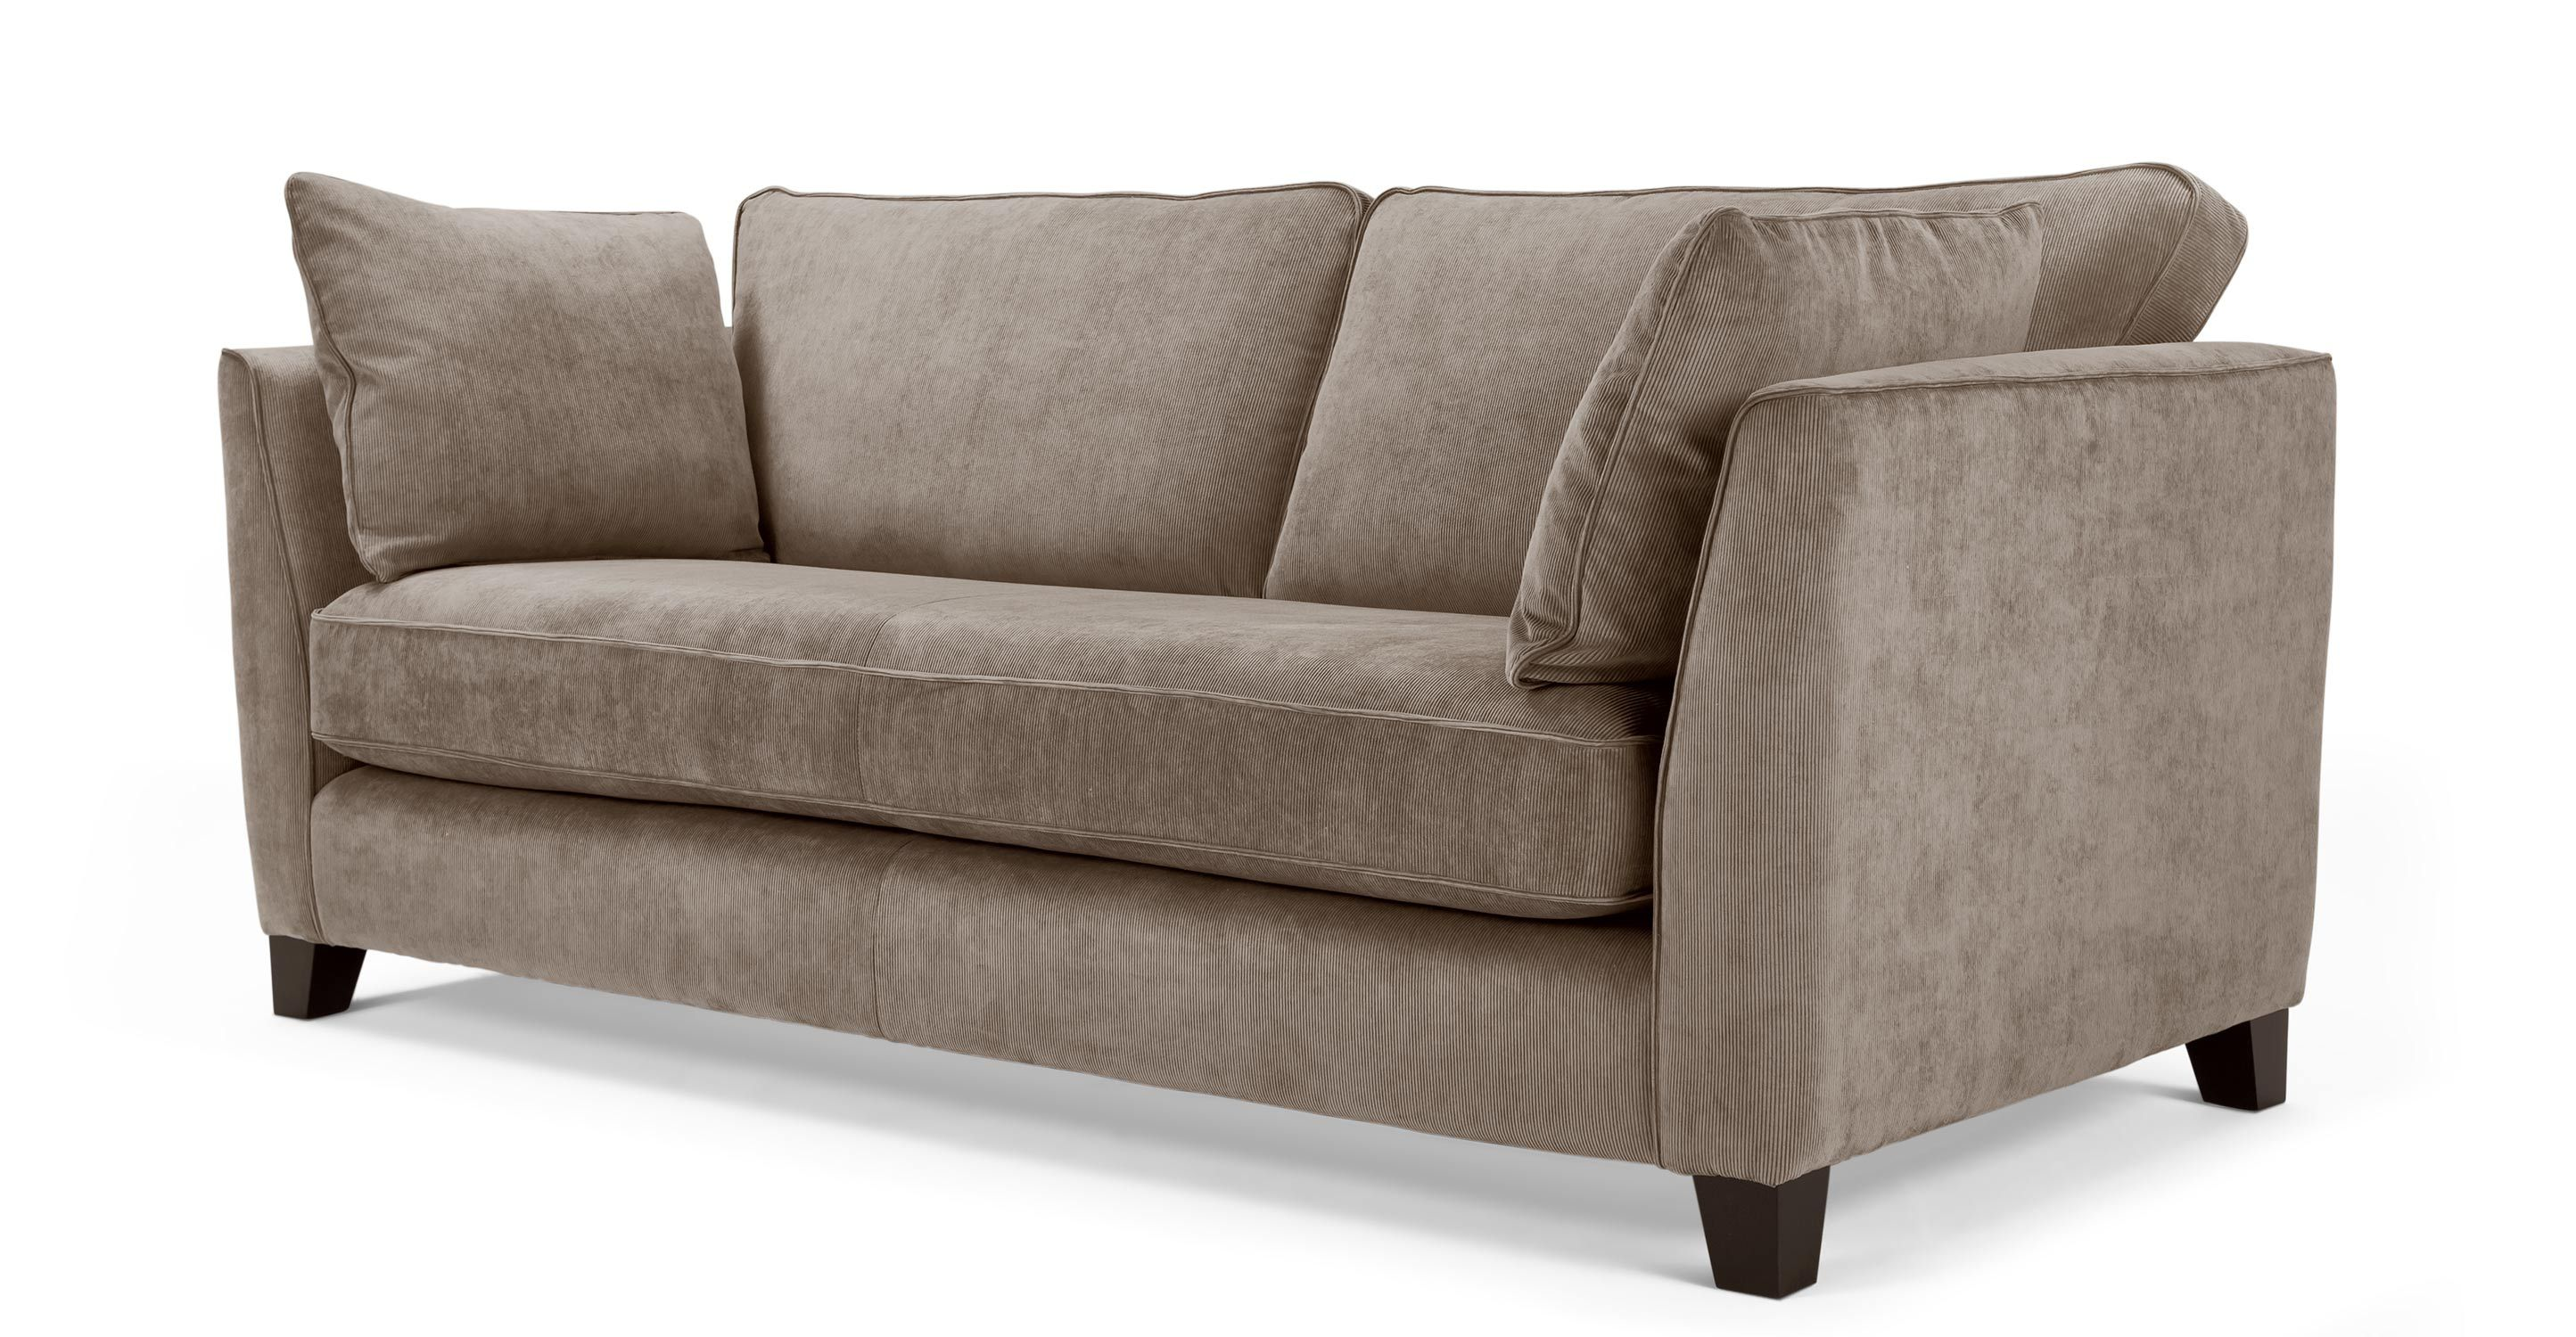 Corduroy 3 Seater Sofa Wolseley 3 Seater Sofa In Mushroom Brown Corduroy Made